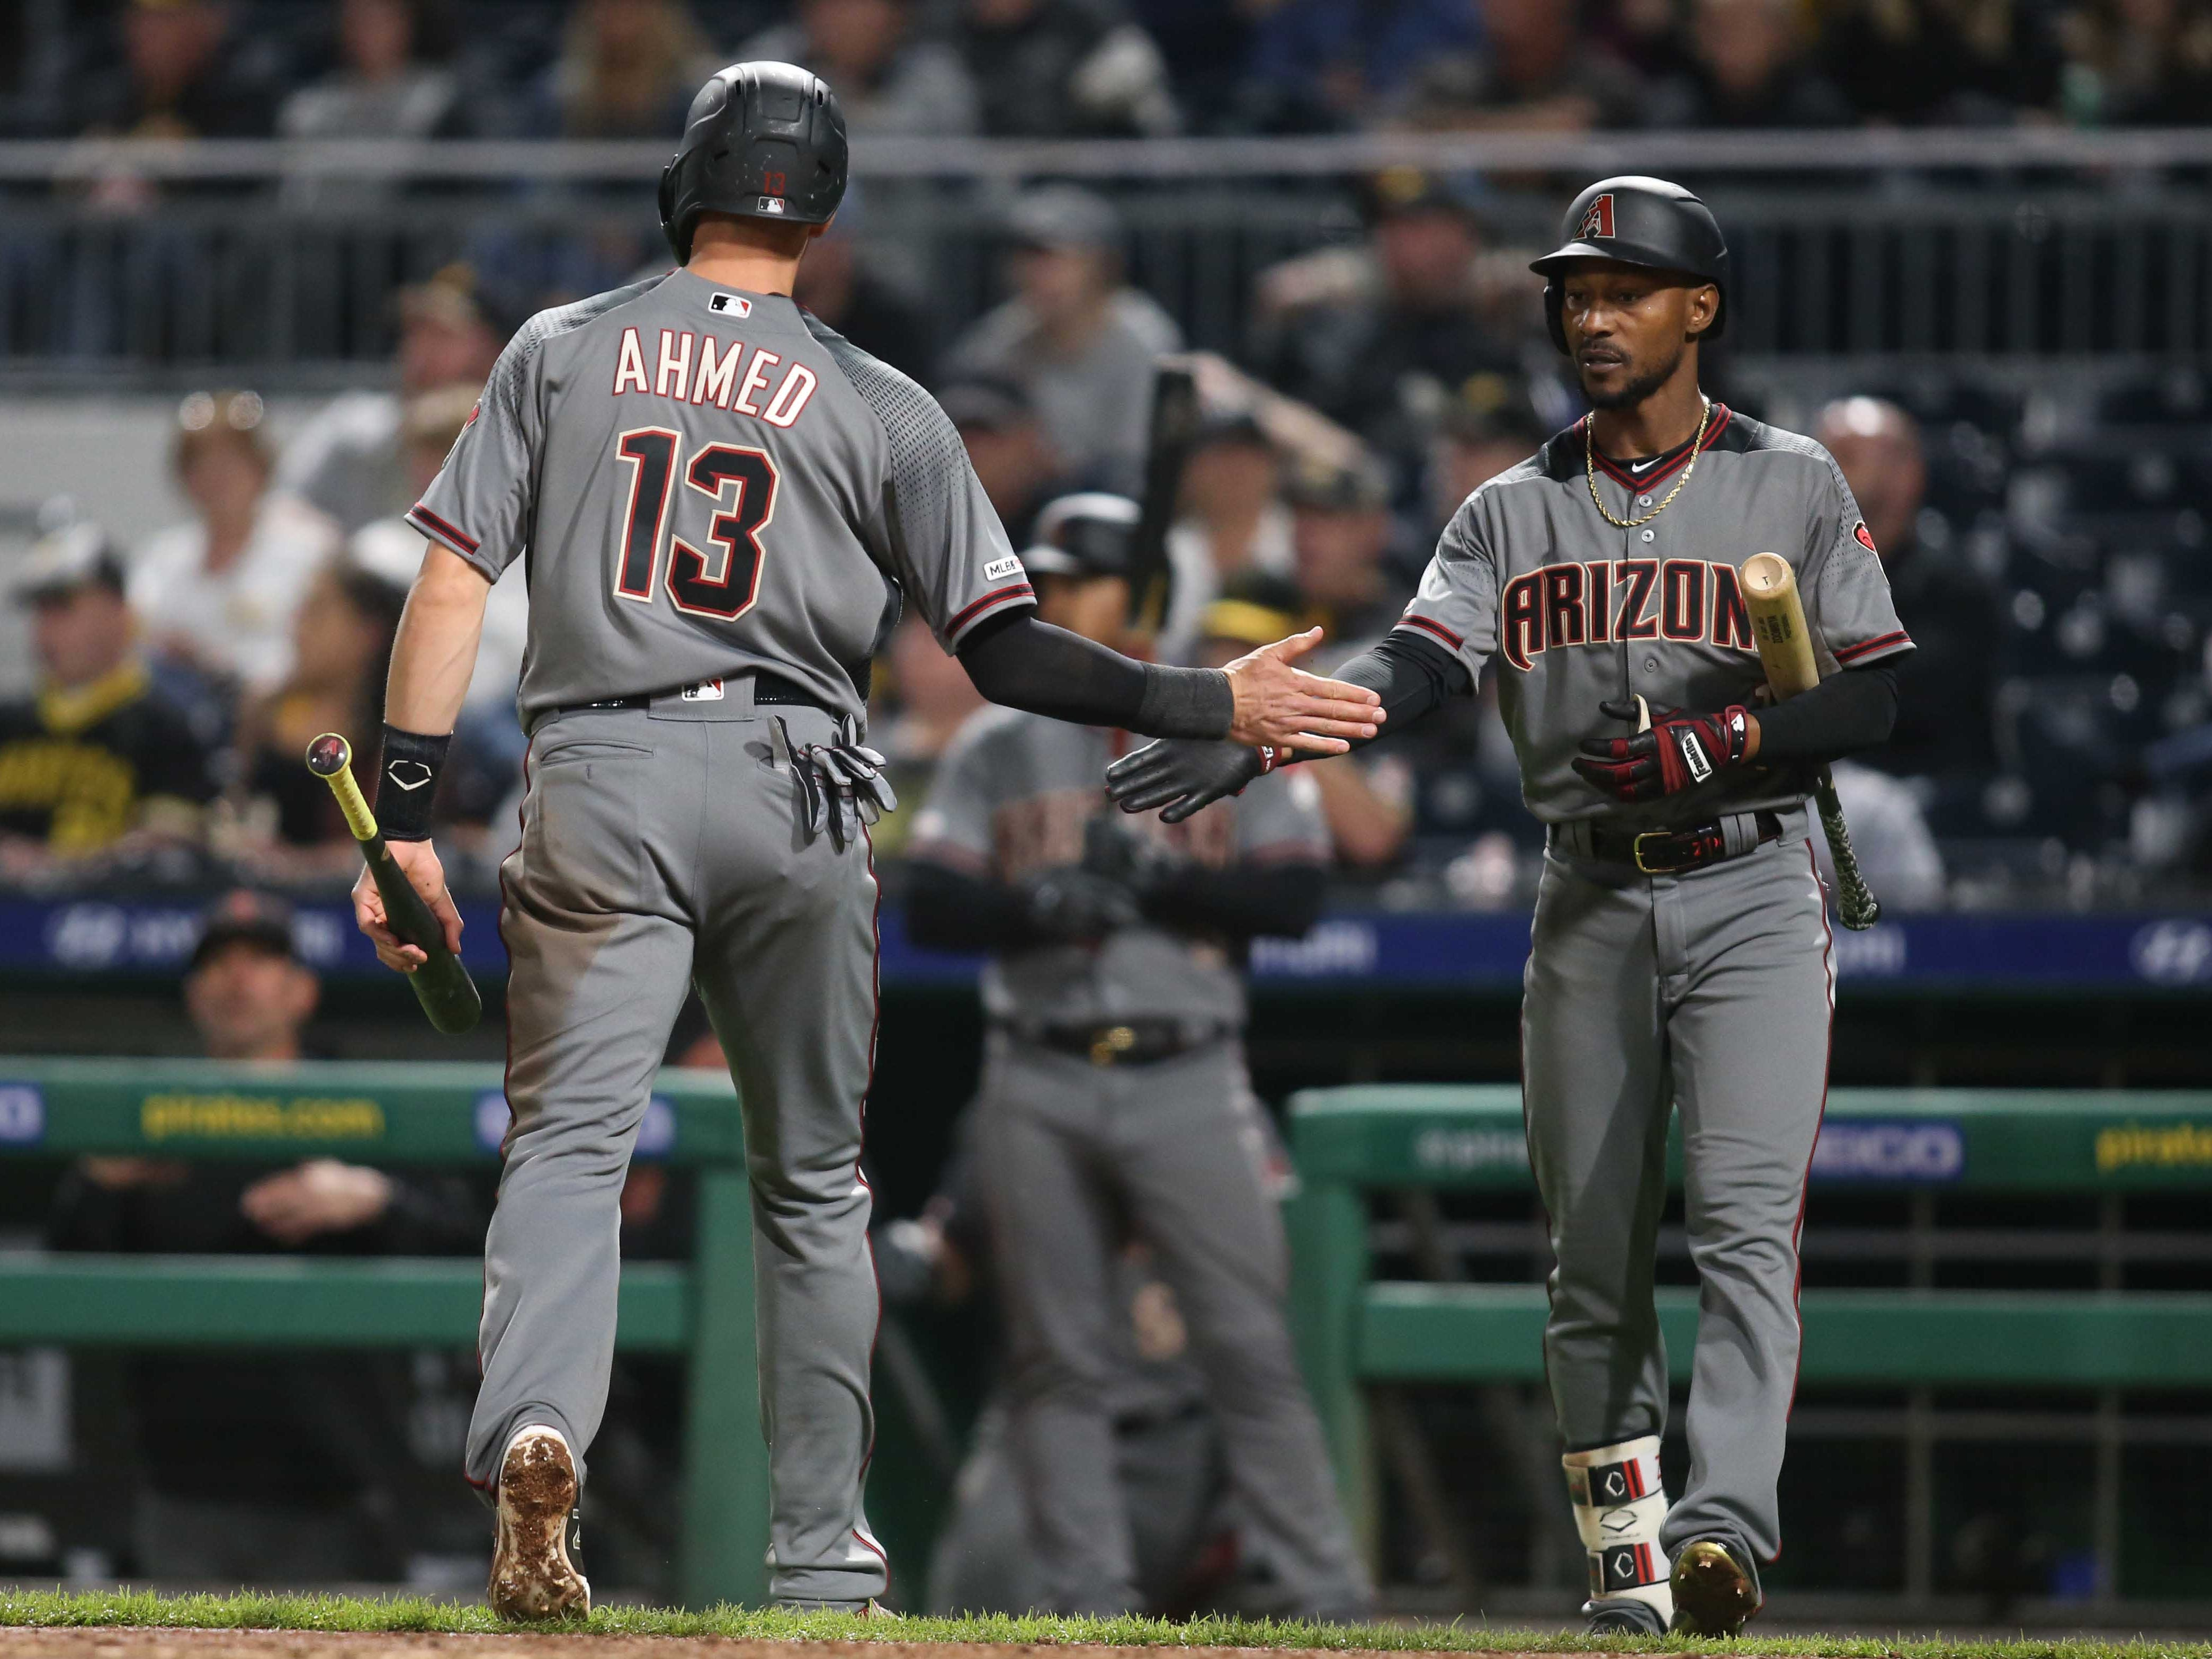 Apr 22, 2019; Pittsburgh, PA, USA;  Arizona Diamondbacks shortstop Nick Ahmed (13) is greeted by center fielder Jarrod Dyson (1) after scoring a run against the Pittsburgh Pirates during the eighth inning at PNC Park.